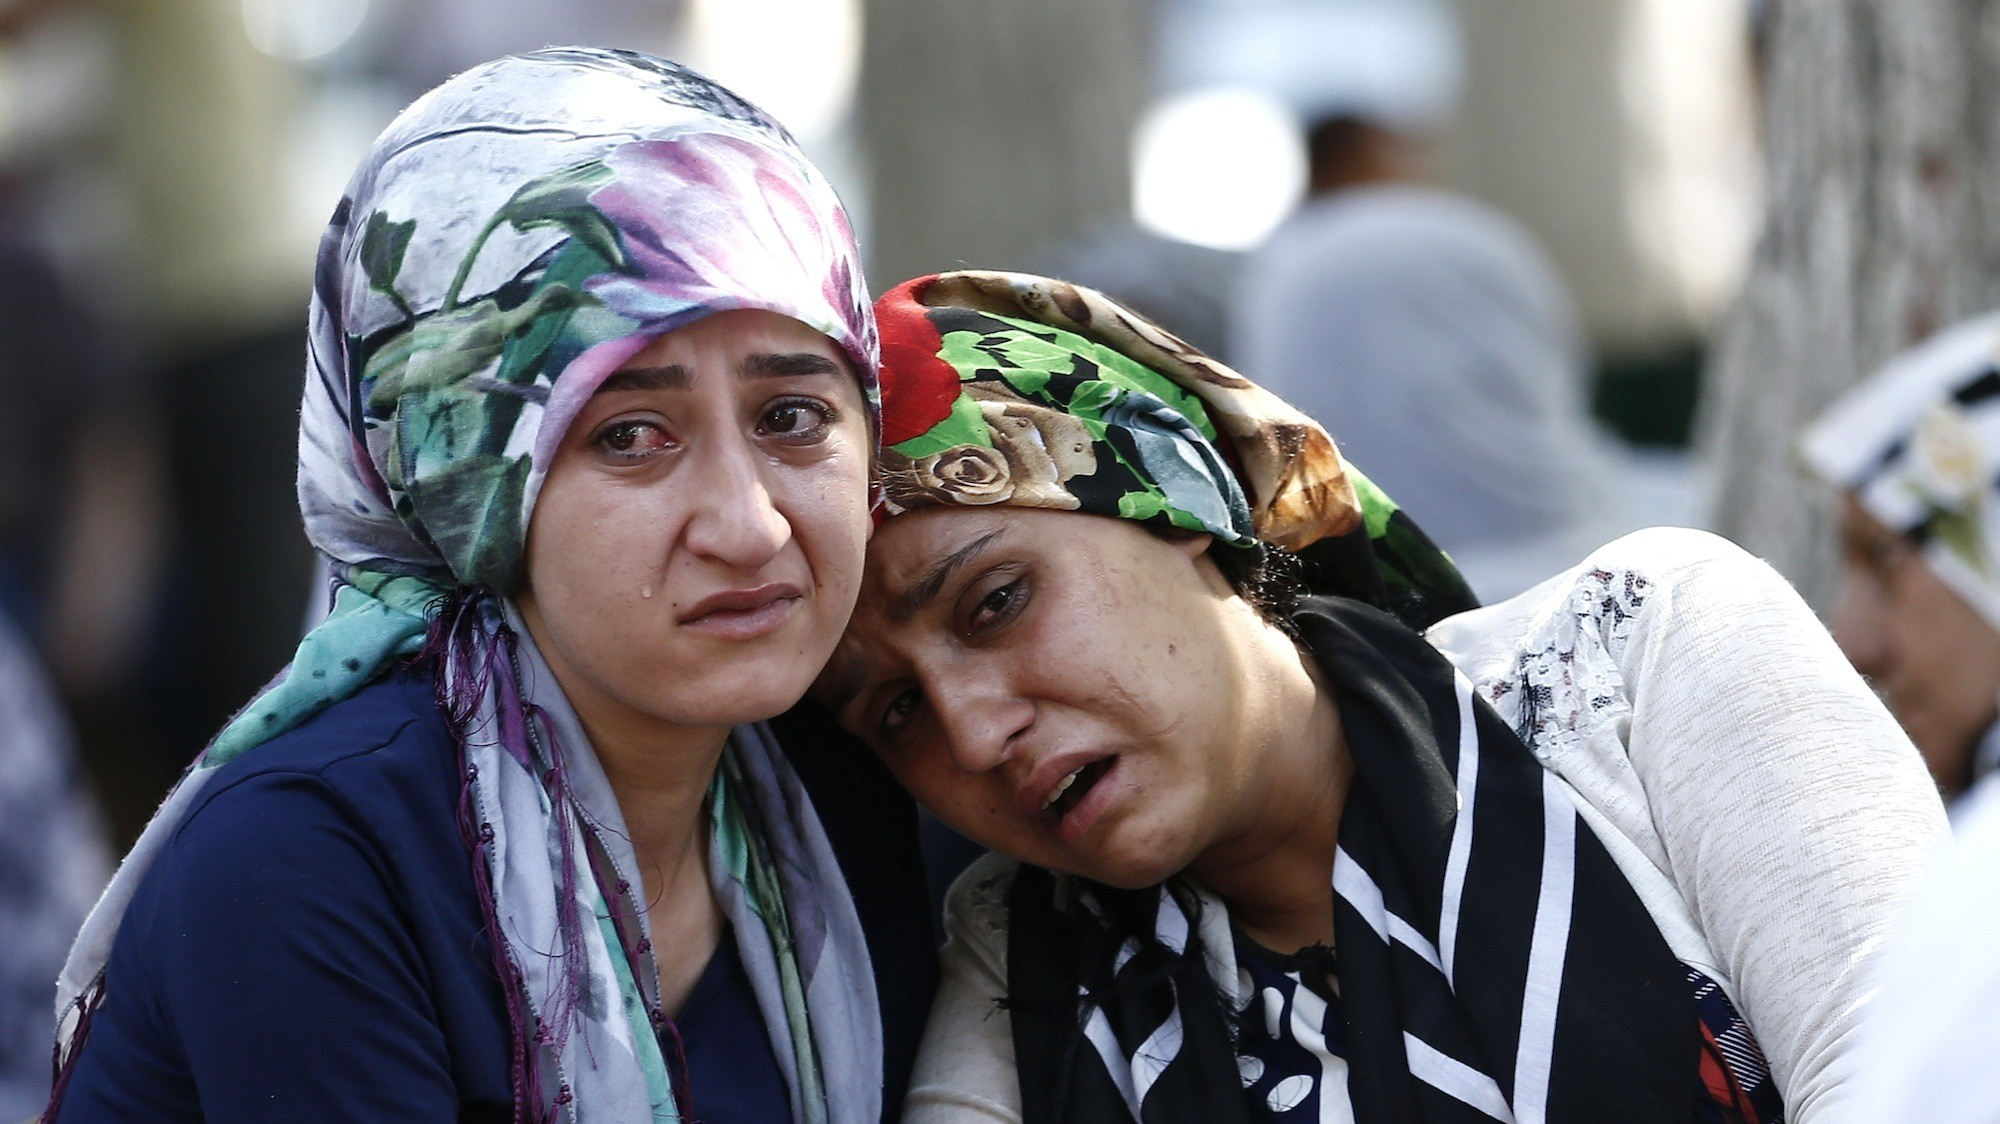 ISIS child suicide bomber blamed for wedding attack in Turkey that killed 51